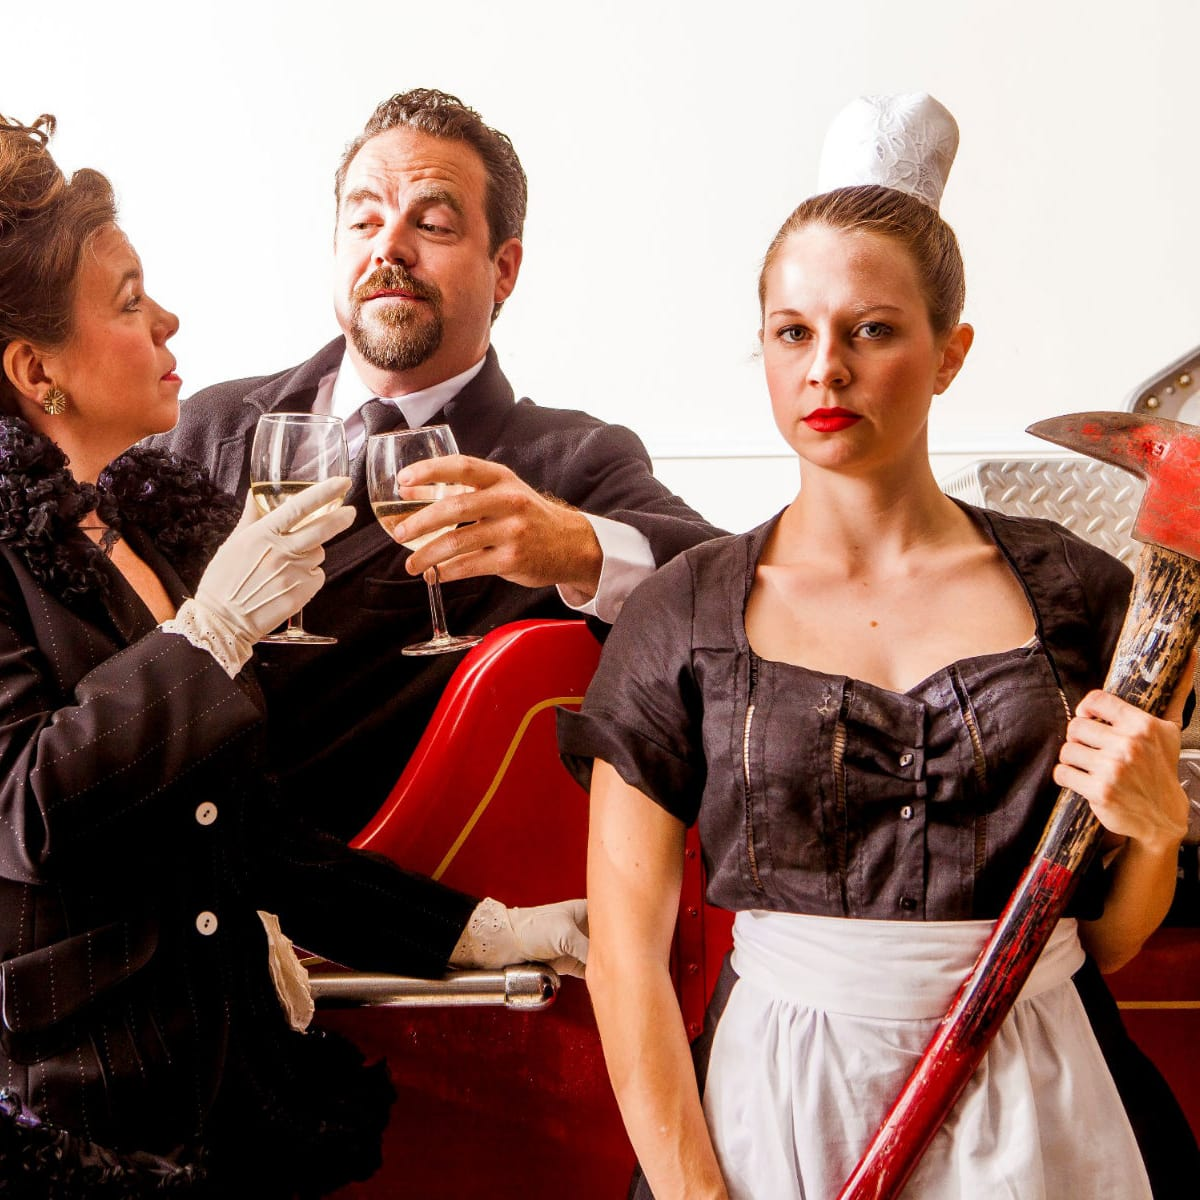 Kitchen Dog Theater presents The Arsonists